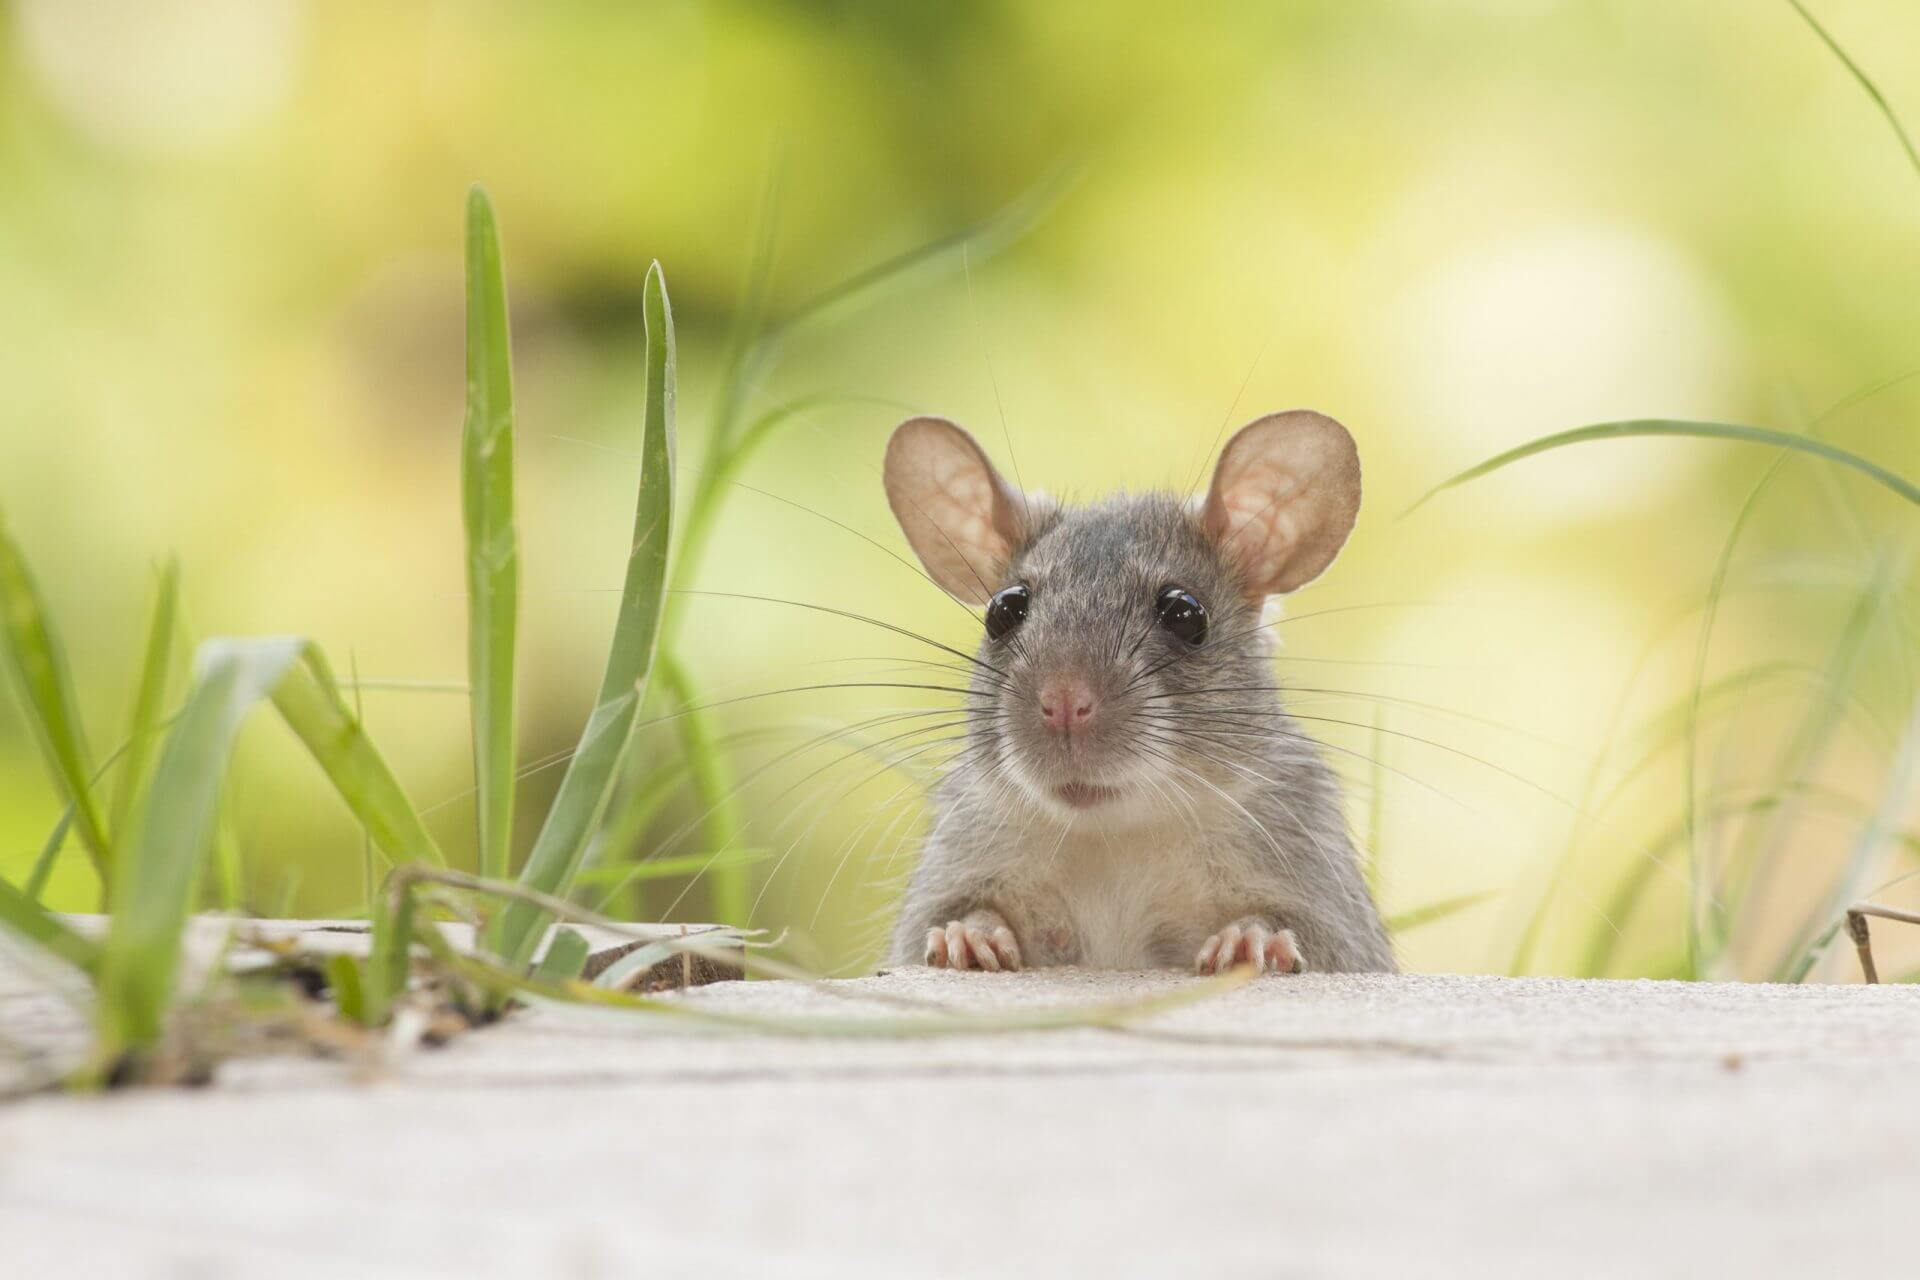 Keep vermin out of your home by scheduling rodent control service.